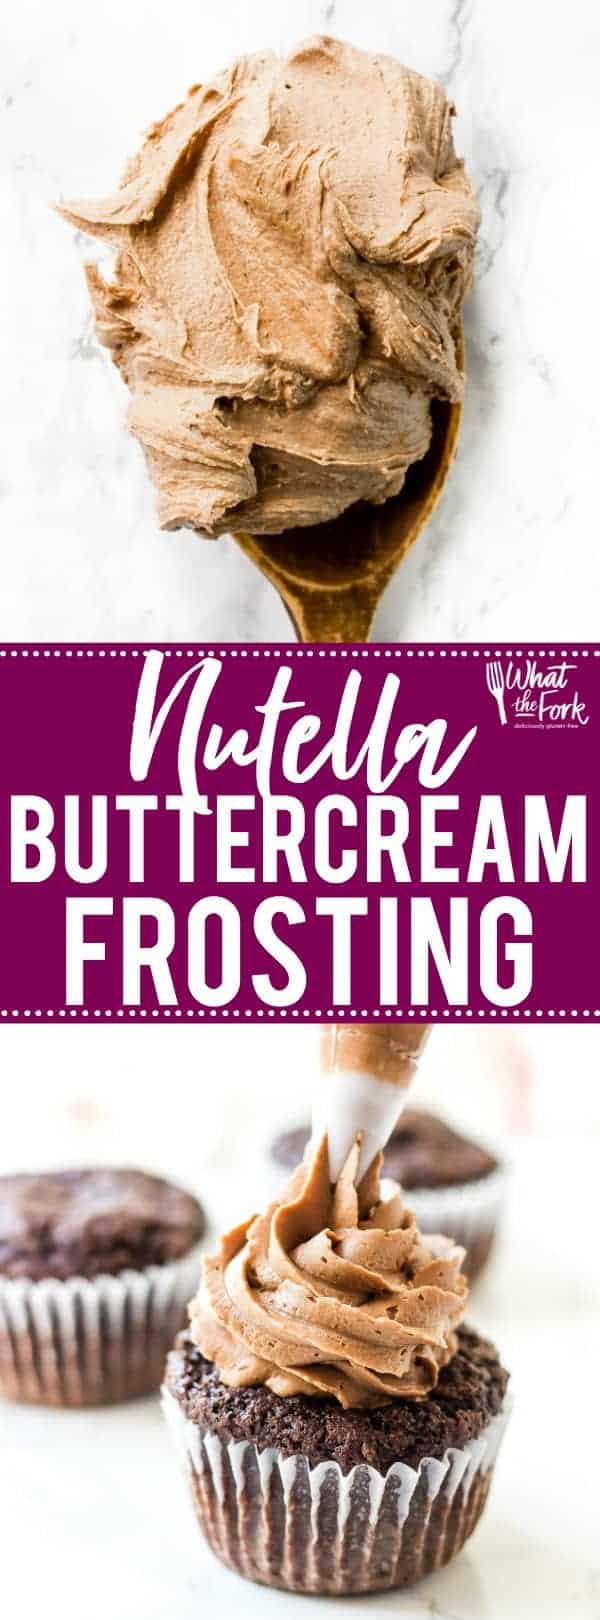 This creamy, dreamy Nutella Buttercream Frosting recipe is the frosting recipe you've been missing. It'll easily replace your standard chocolate buttercream frosting recipe for anything you make. It's great for spreading or piping on cupcakes, cakes, brownies, or cookies. You'll love it! Recipe from @whattheforkblog   whattheforkfoodblog.com   easy homemade frosting recipes   how to make Nutella buttercream frosting   how to make frosting with Nutella   #Nutella #chocoalte #frosting #dessert